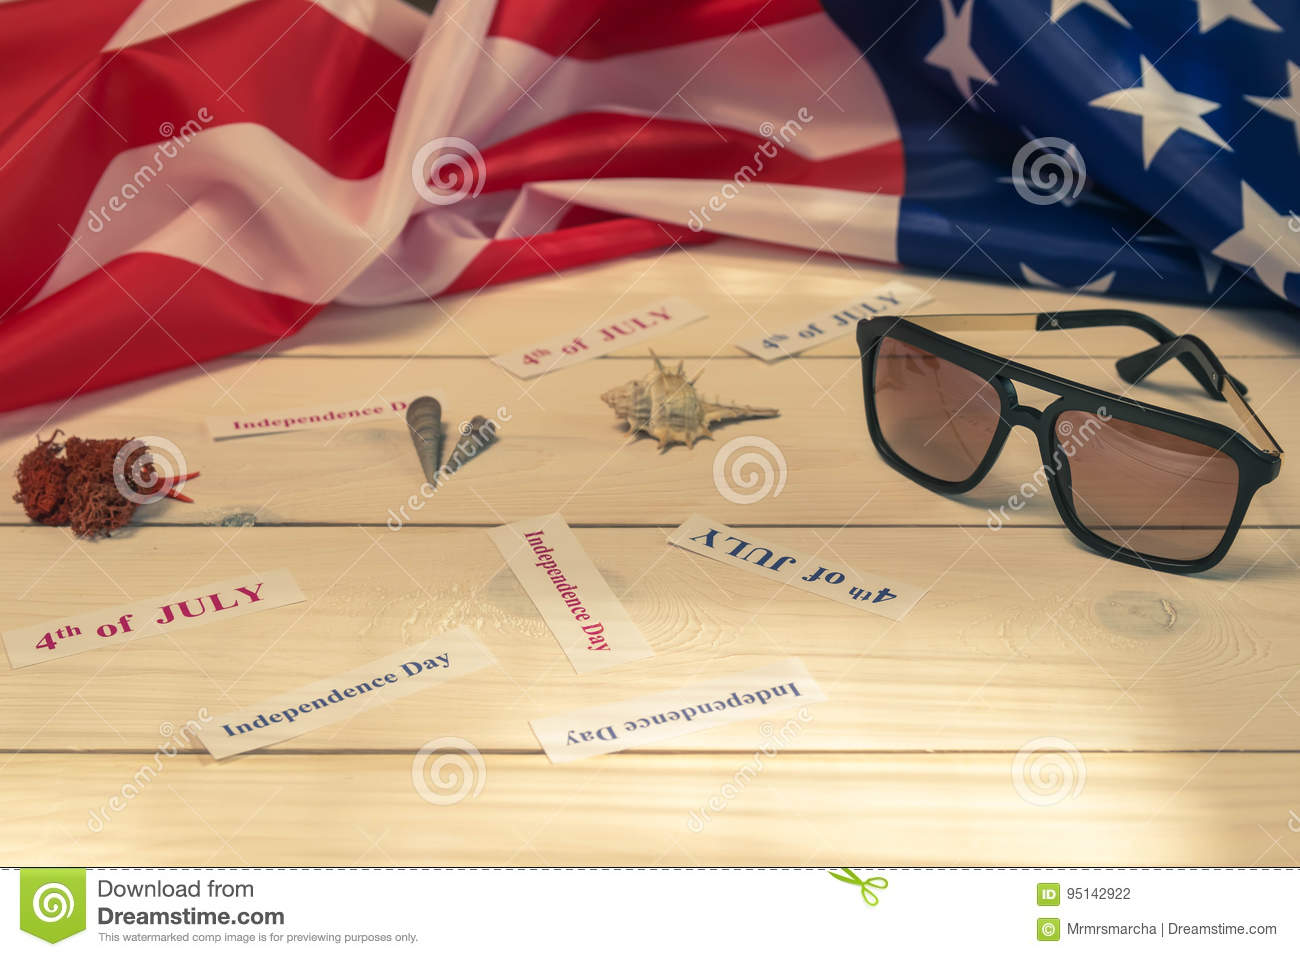 4th of July, the US Independence Day, wood background, American flag, shells, weekends, holidays, sunglasses